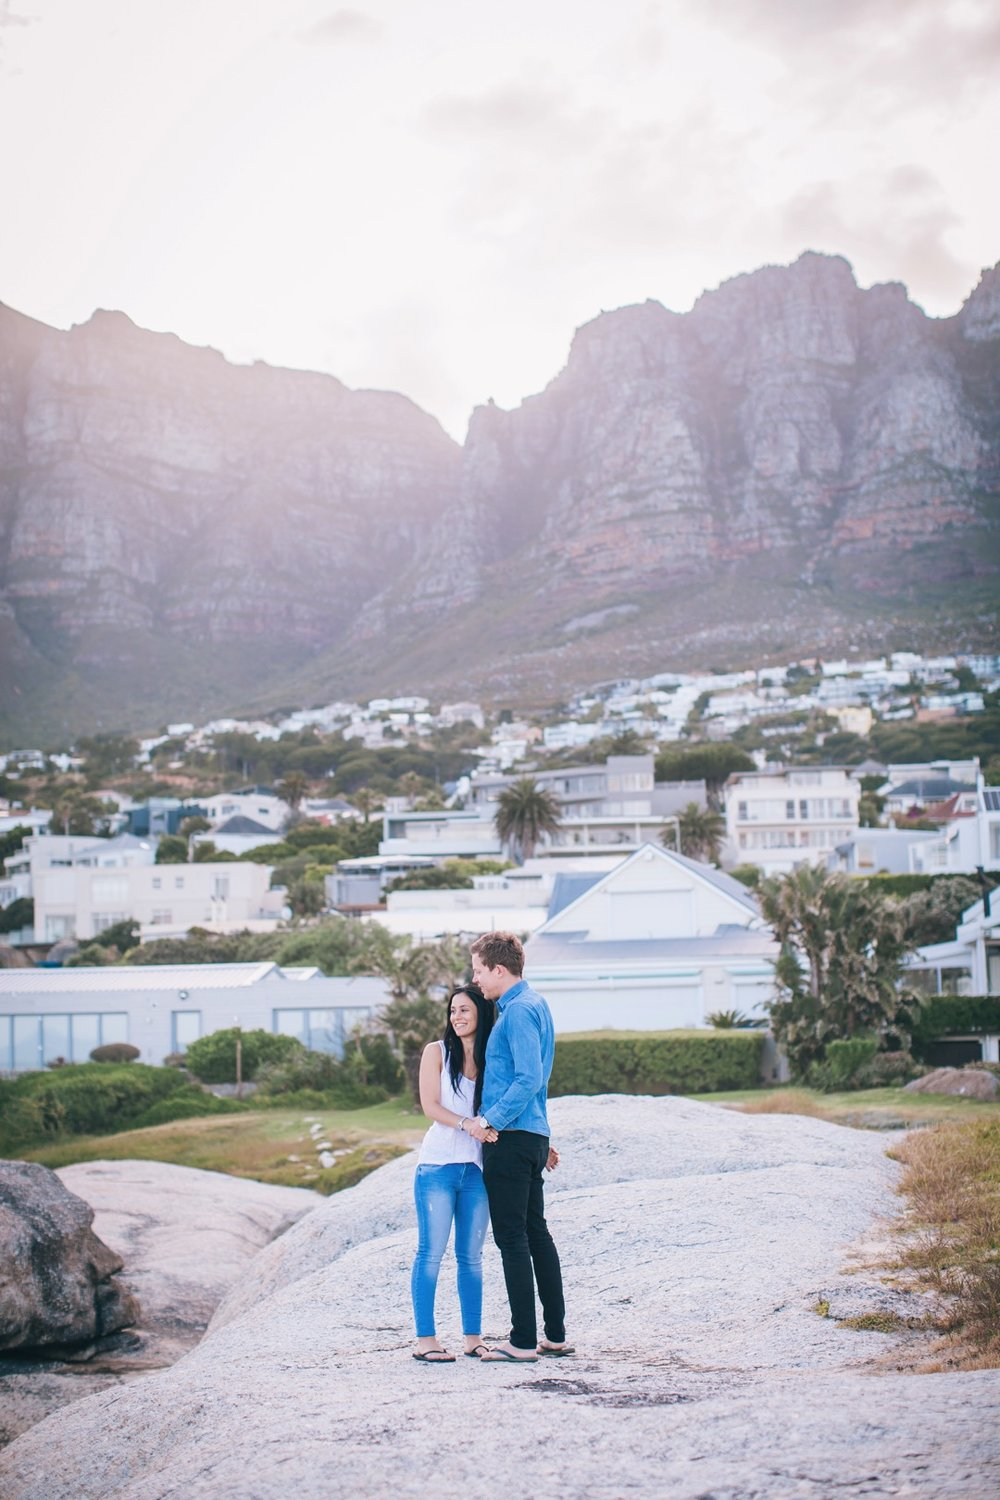 FLYTOGRAPHER Vacation Photographer in Cape Town - Tania